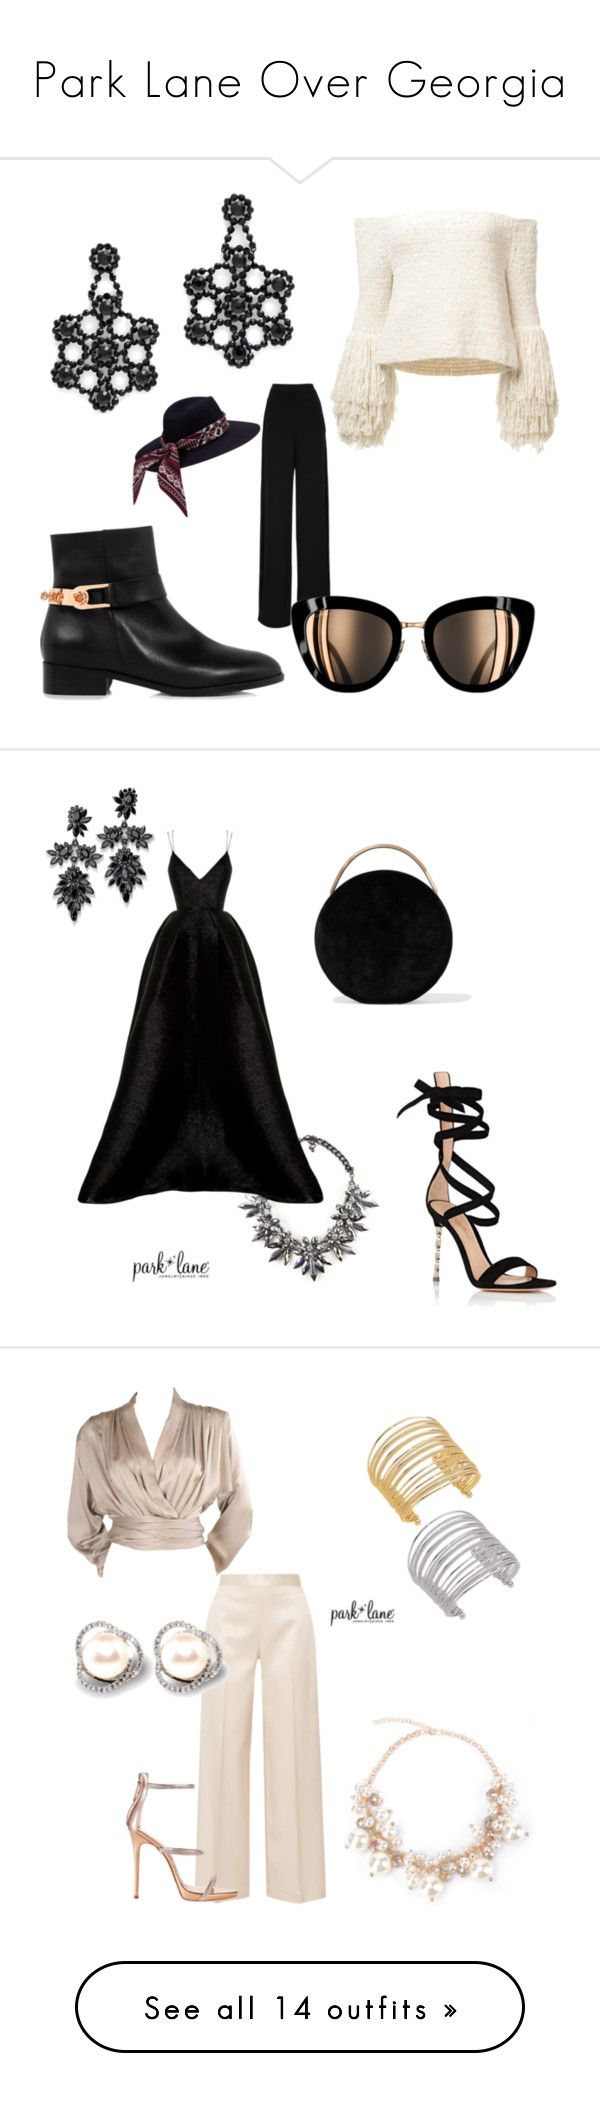 Park Lane Over Georgia by parklaneovergeorgia on Polyvore featuring polyvore, fashion, style, Rochas, Eugenia Kim, Kate Spade, clothing, Alex Perry, Gianvito Rossi, Eddie Borgo, Fallon, The Row, Yves Saint Laurent, Giuseppe Zanotti, Roksanda, See by Chloé, Goen.J, Badgley Mischka, Design Lab, Michael Kors, Boohoo, Oscar de la Renta, self-portrait, Balenciaga, Nine West, Urban Decay, Love Moschino, Madden Girl, RED Valentino, Rick Owens, Jeffrey Levinson and River Island